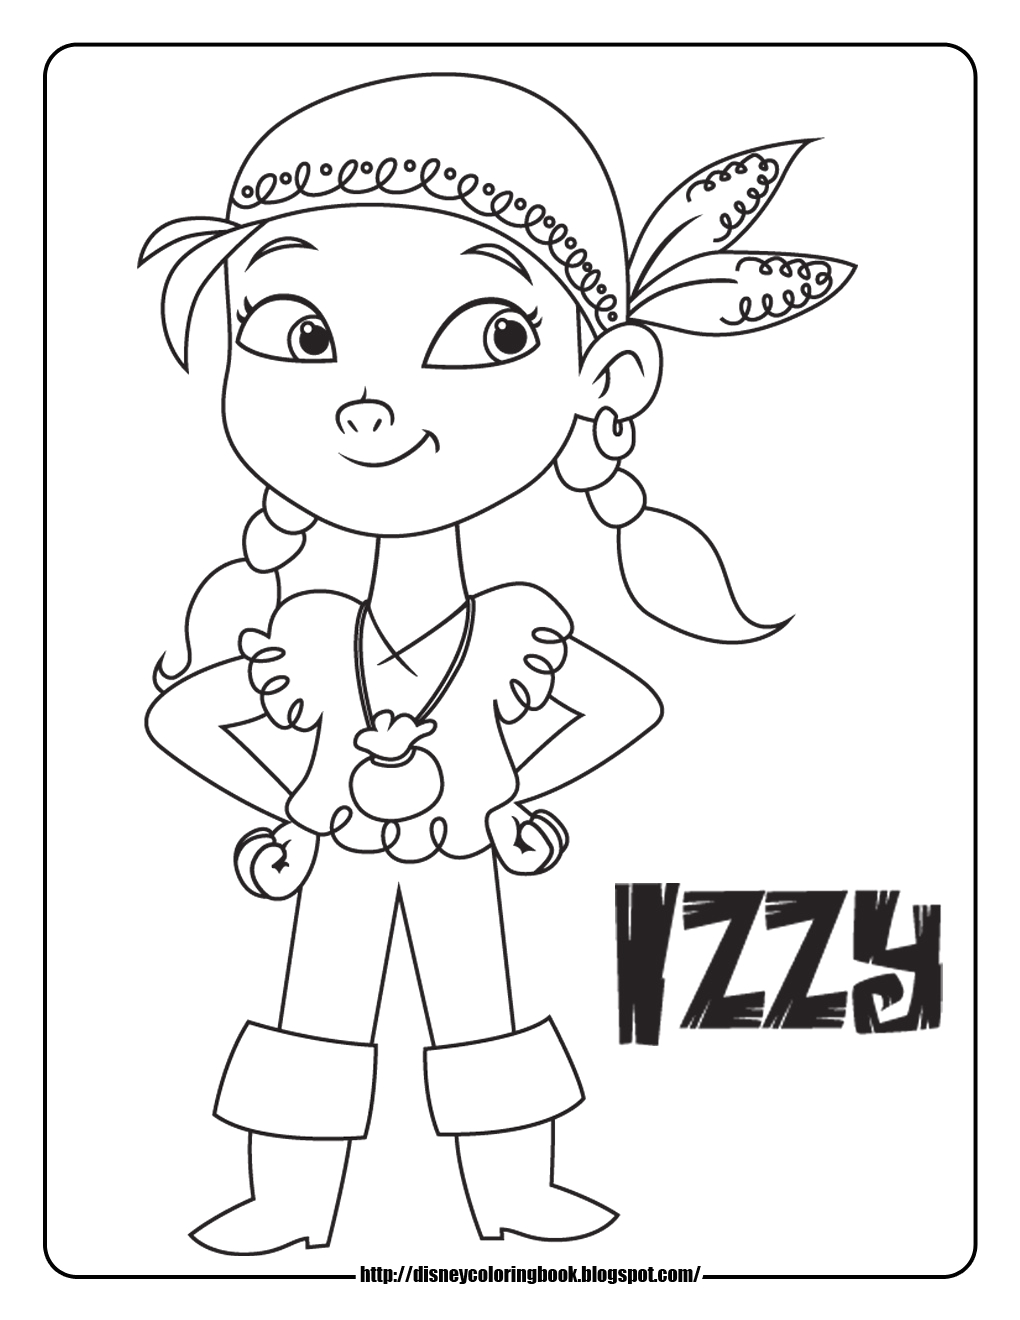 Izzy Jake and the Neverland Pirates Coloring Pages Jake and the Neverland Pirates 1 Free Disney Coloring